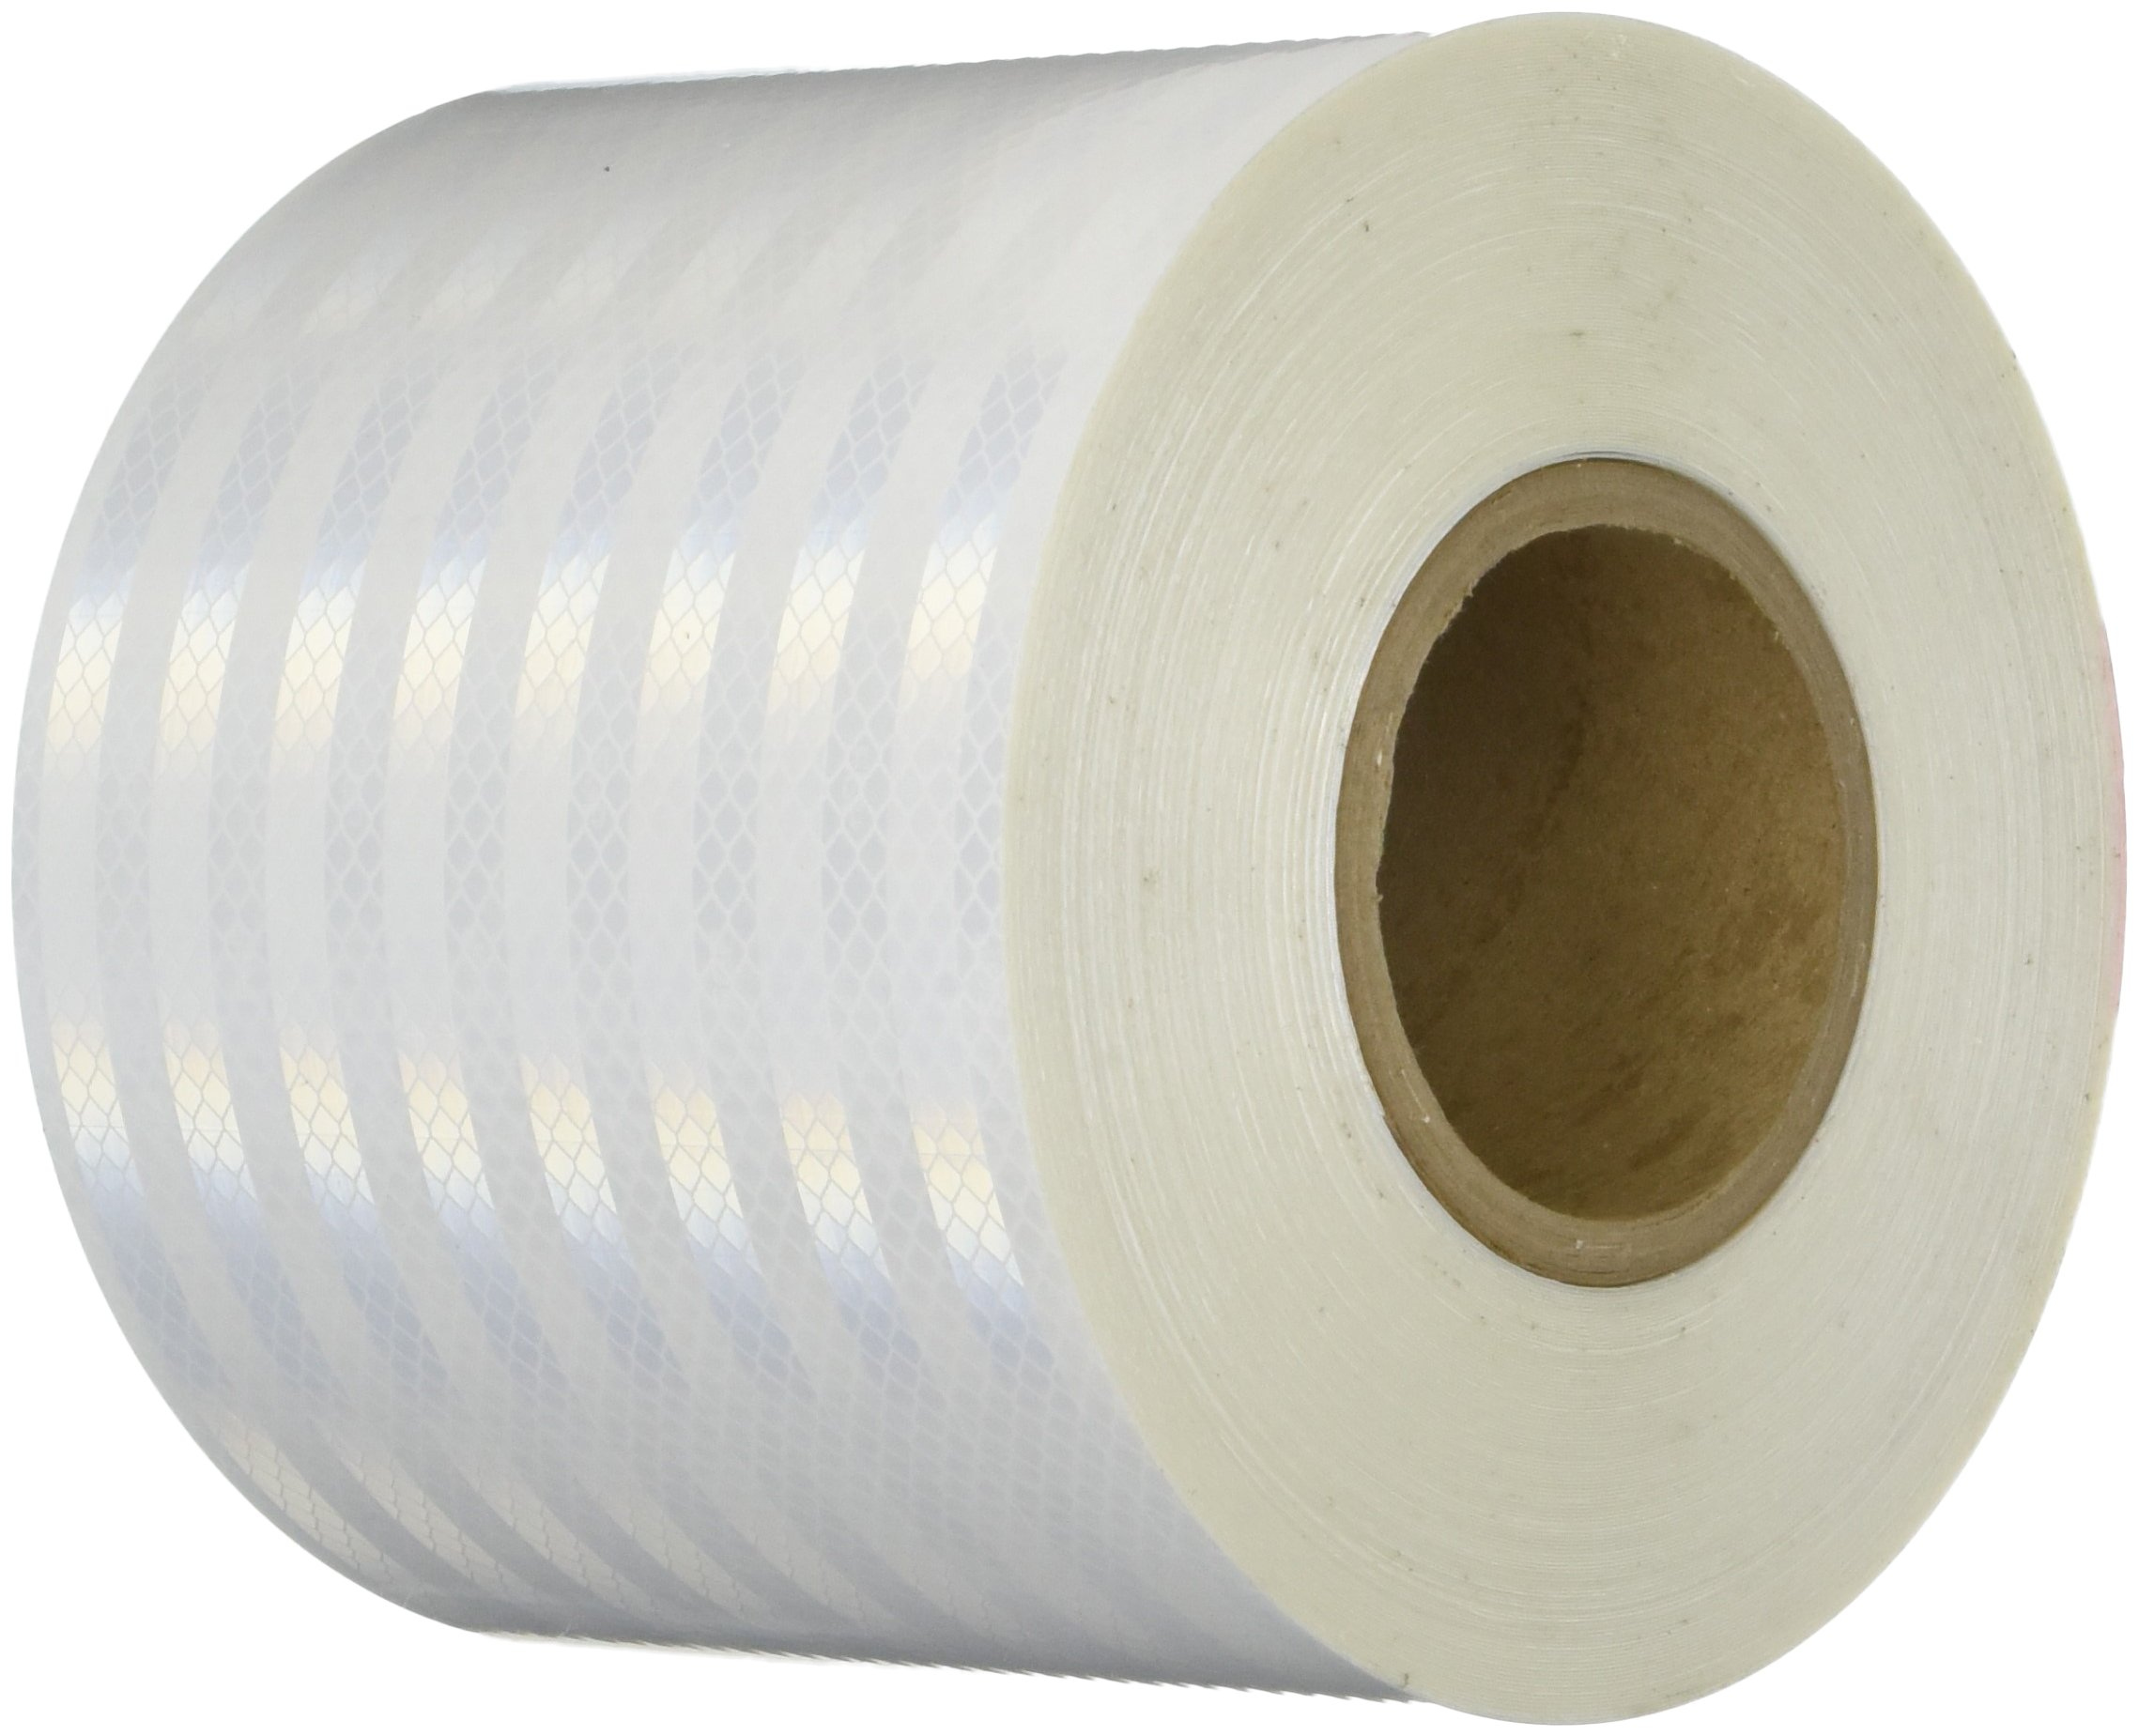 3M 3430 White Micro Prismatic Sheeting Reflective Tape - 6 in. X 150 ft. Non Metalized Adhesive Tape Roll. Safety Tape